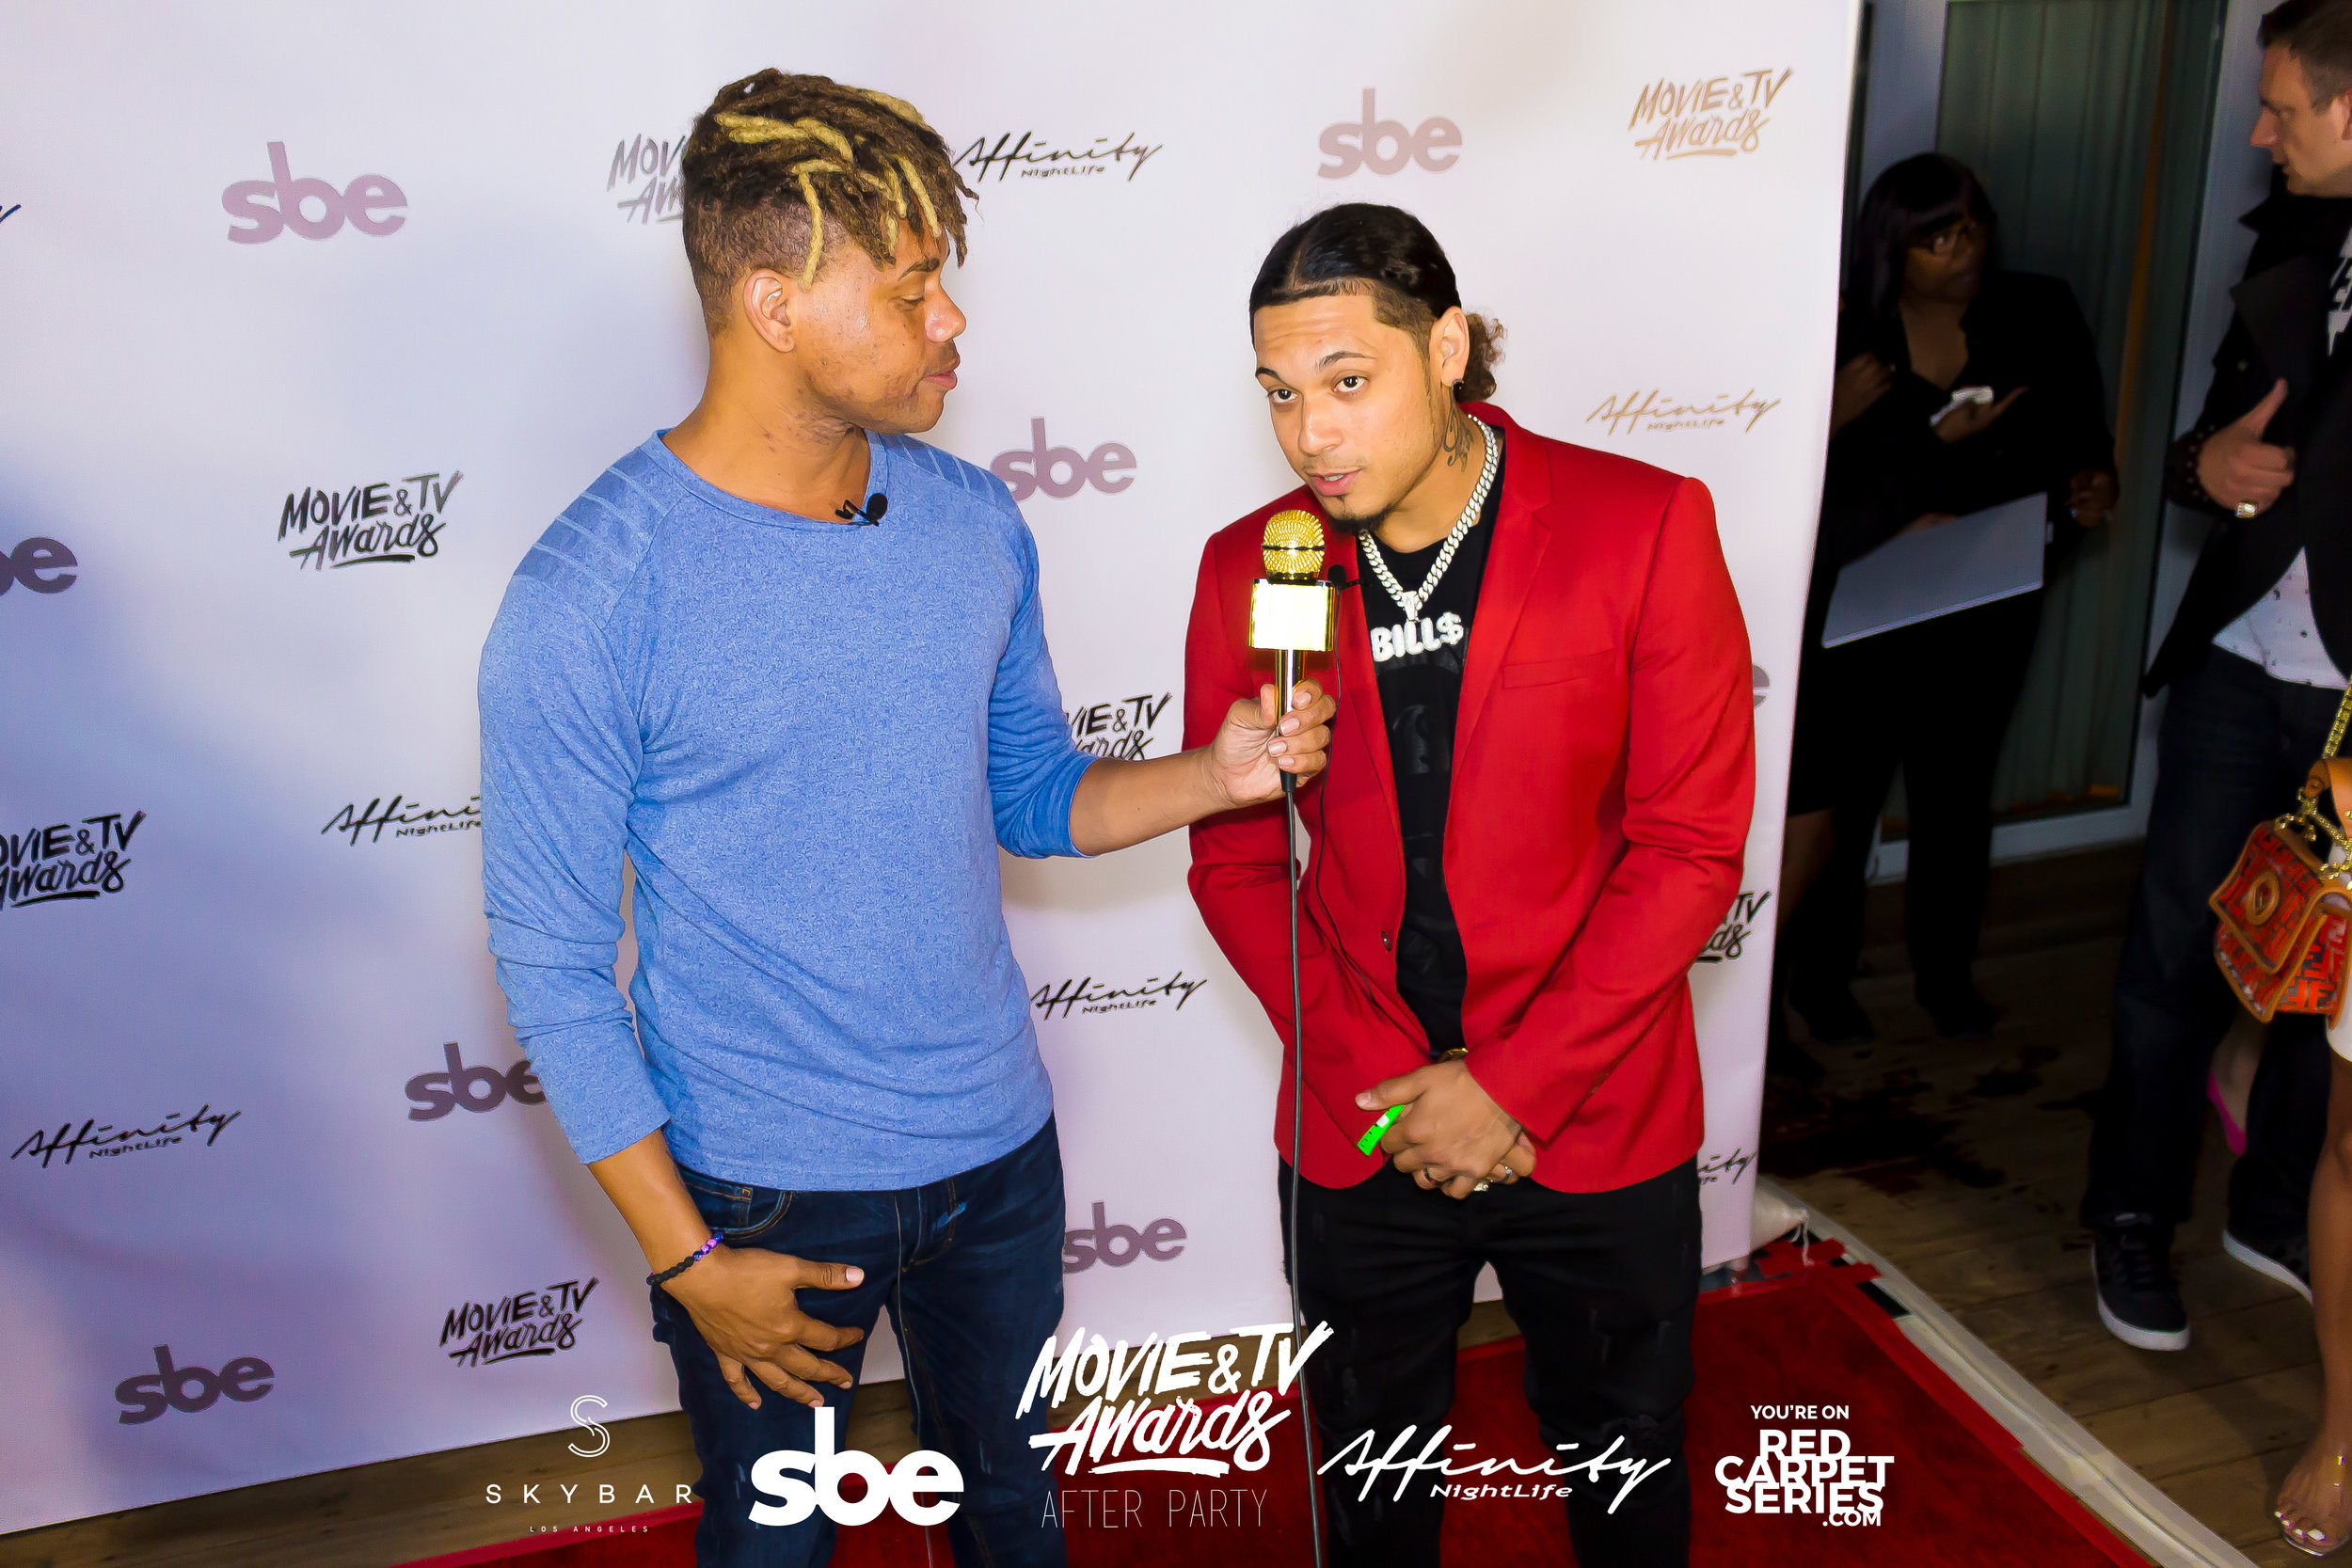 Affinity Nightlife MTV Movie & TV Awards After Party - Skybar at Mondrian - 06-15-19 - Vol. 1_54.jpg